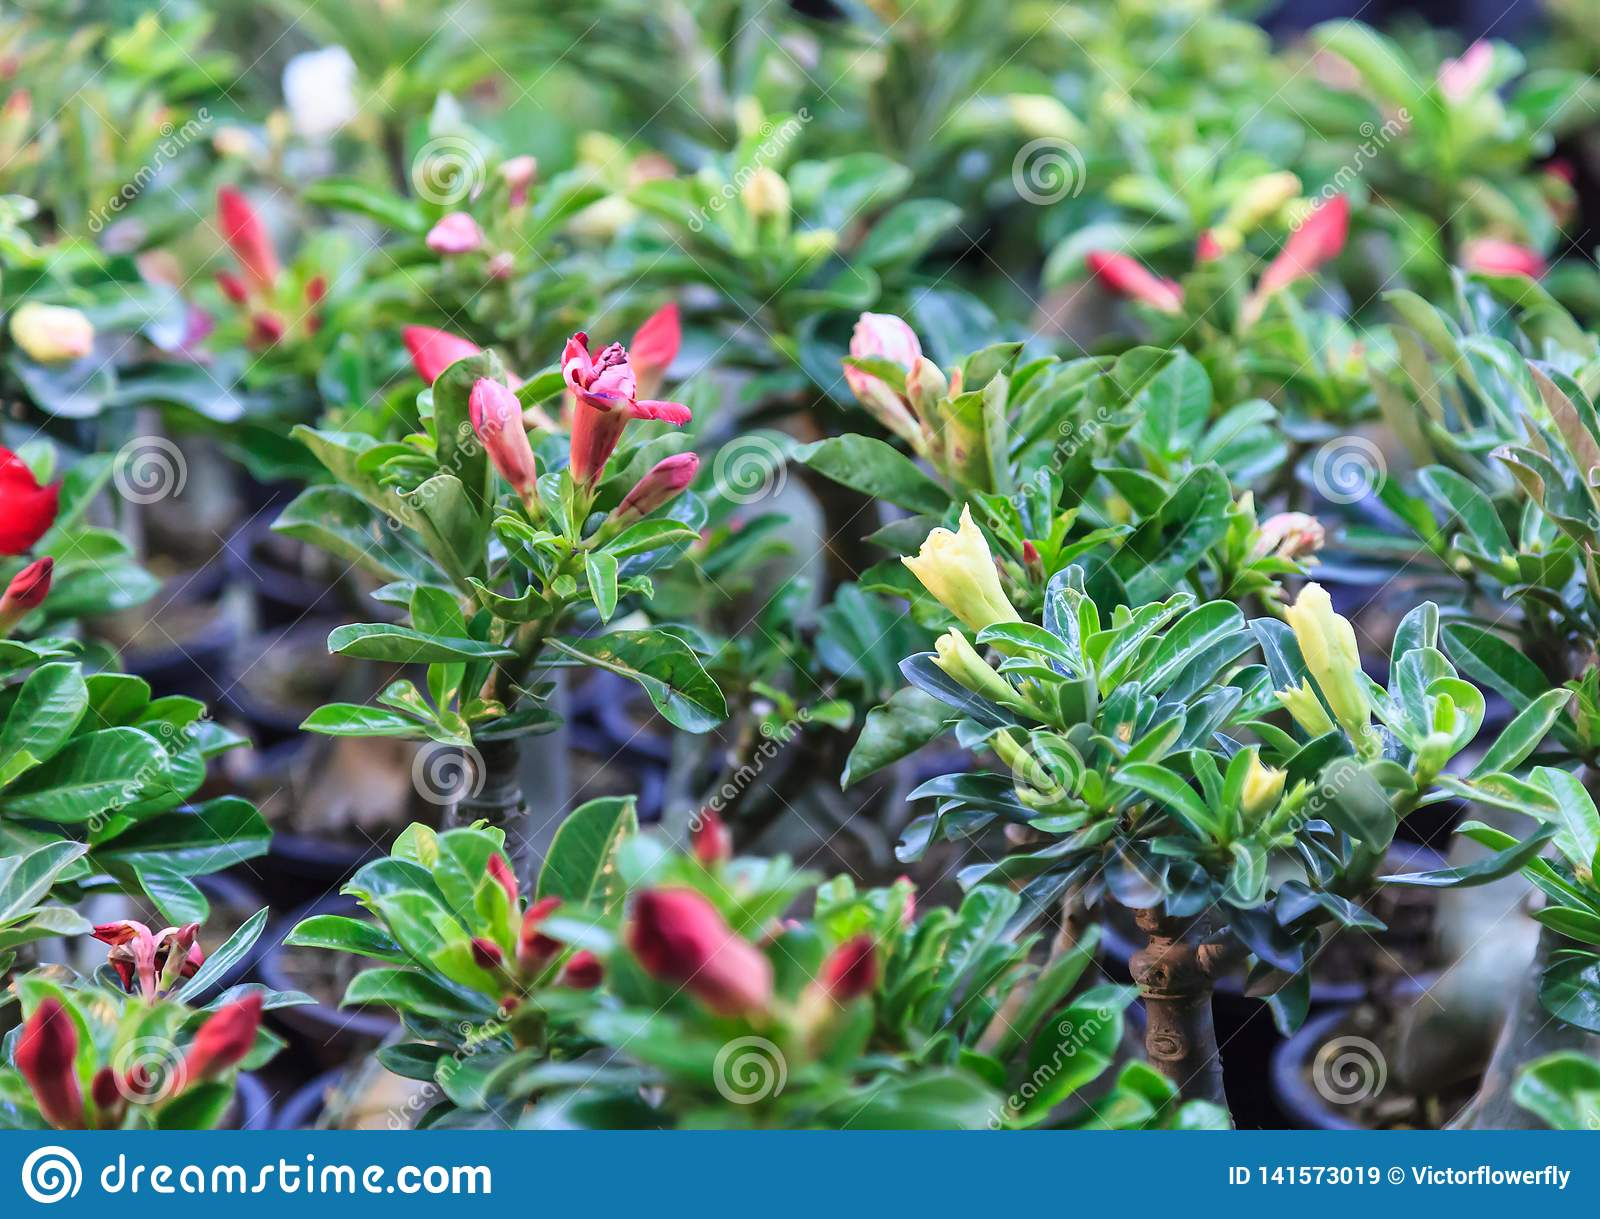 Collection of Fresh Adenium Bignonia, Desert Rose, Japanese Frangipani Flowering Plants in Pots with Colorful Blossoming Flowers